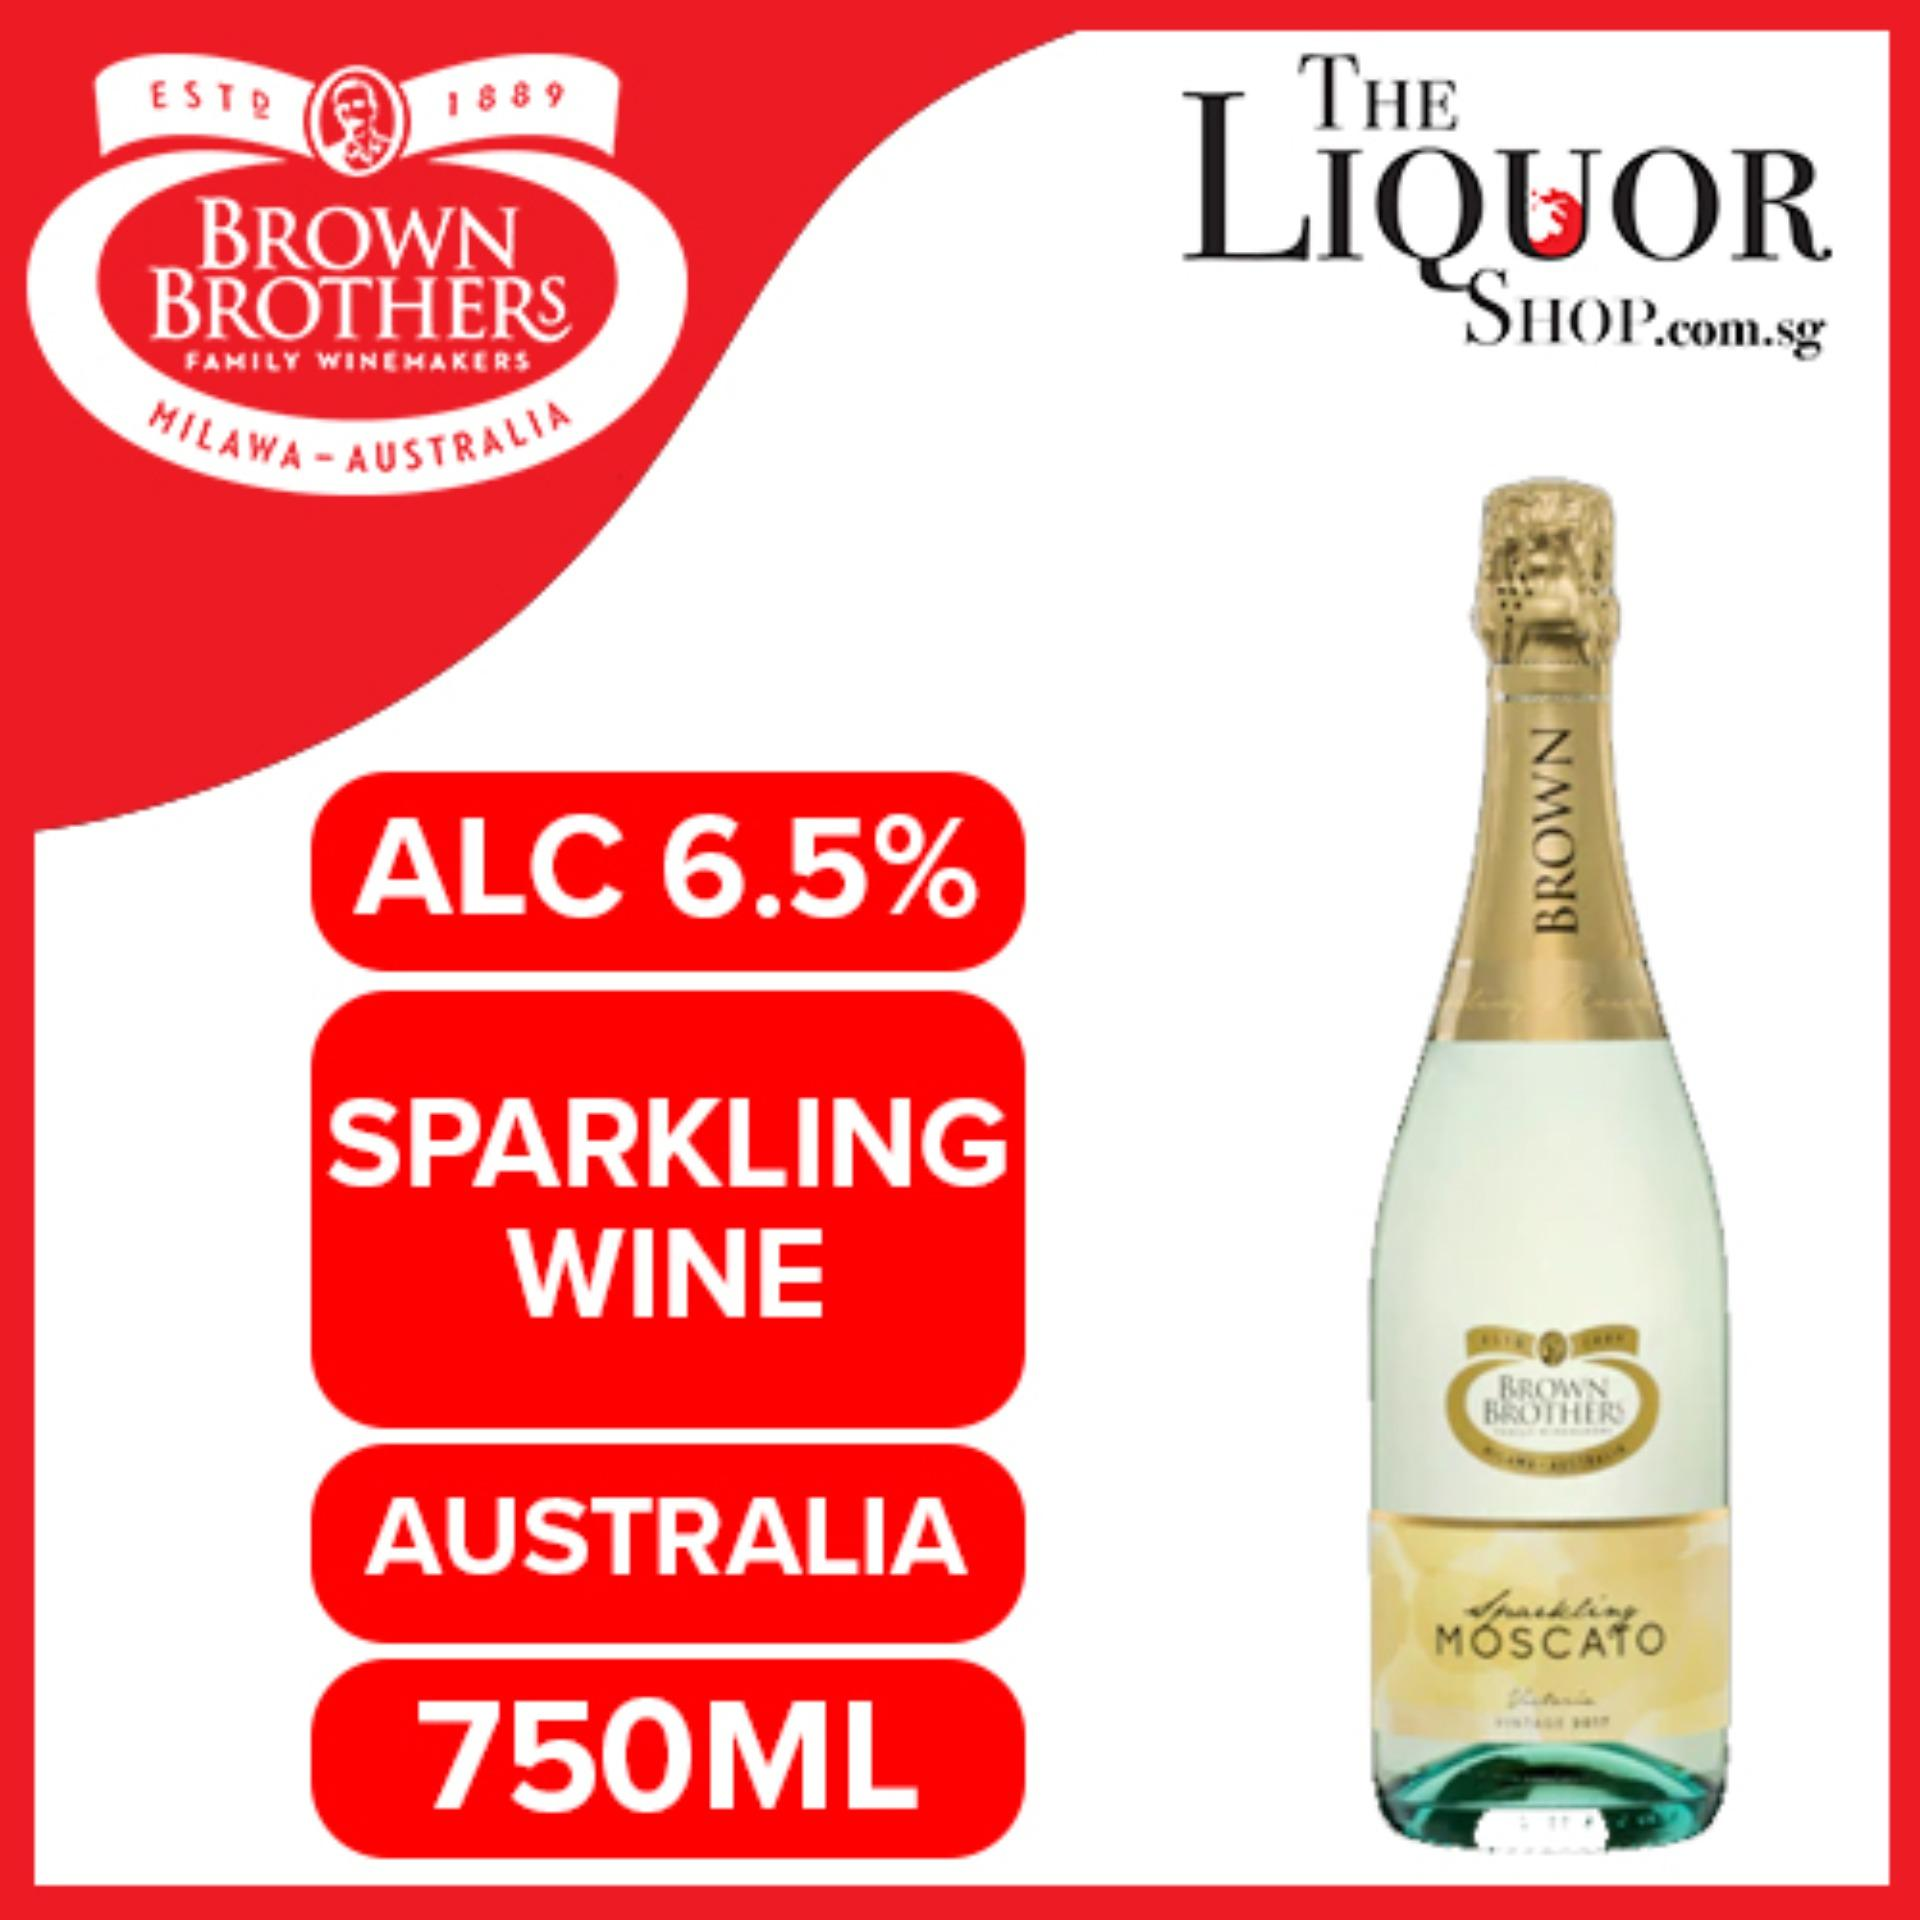 Brown Brothers Sparkling Moscato 750ml By The Liquor Shop.